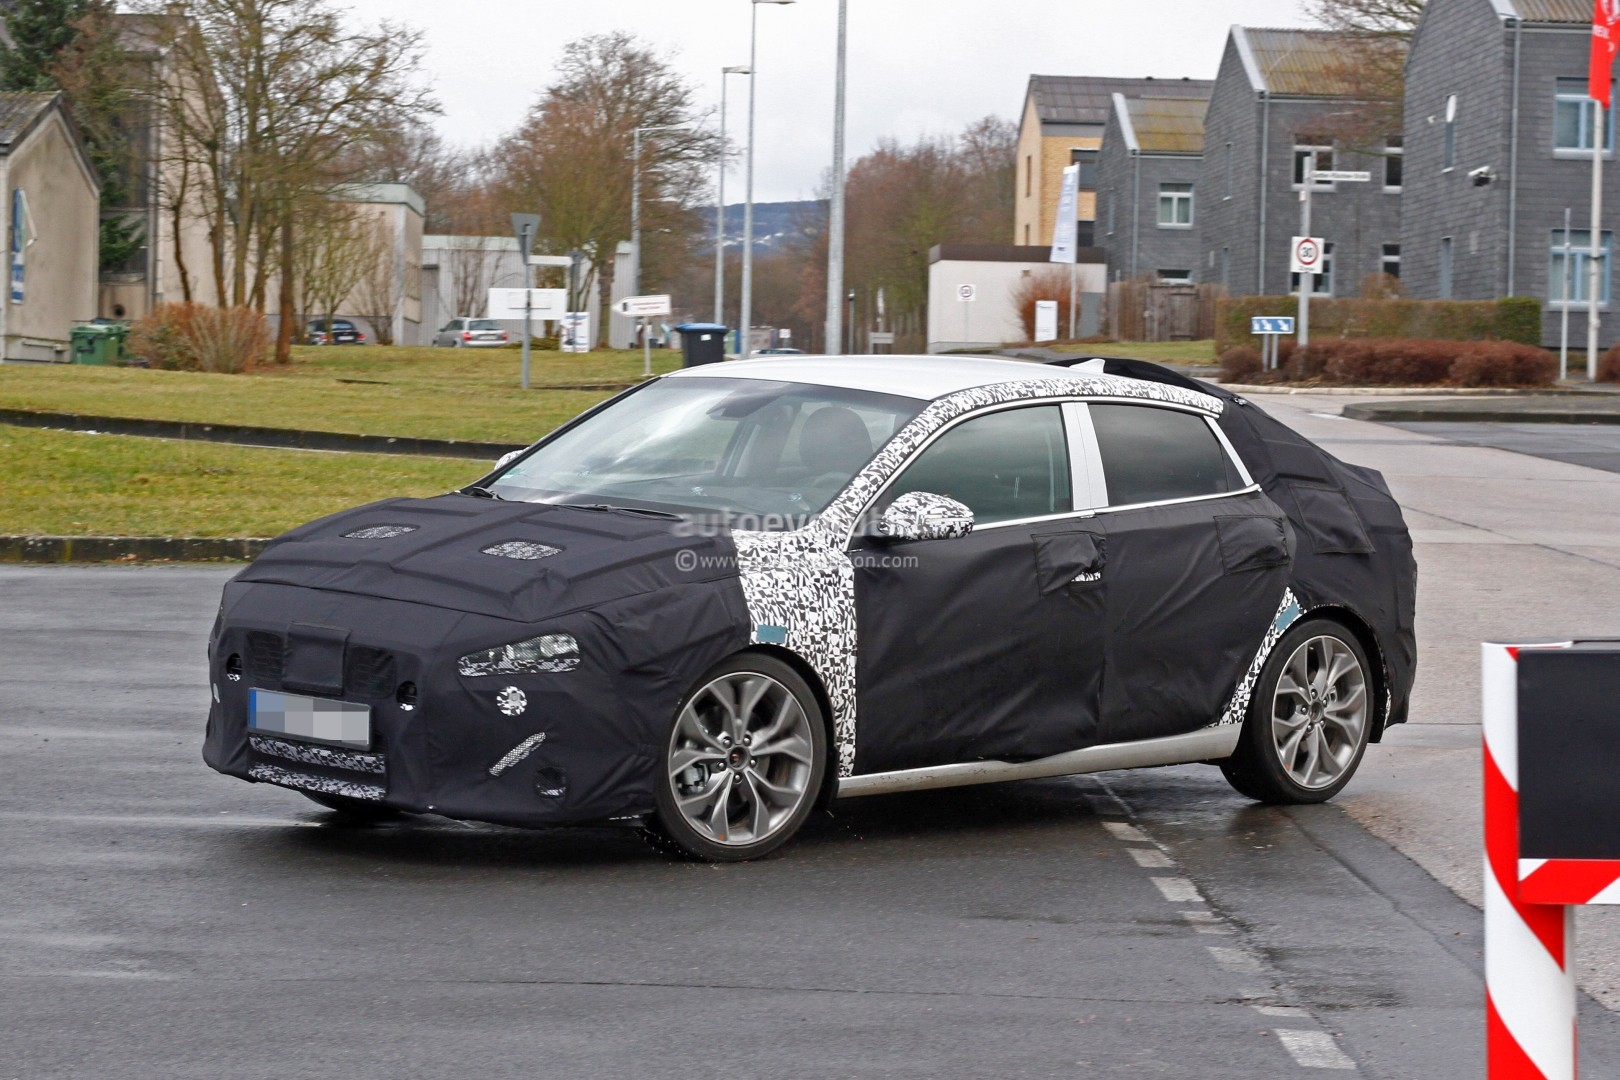 hyundai i30 elantra fastback spied could come to us as affordable 5 door coupe autoevolution. Black Bedroom Furniture Sets. Home Design Ideas